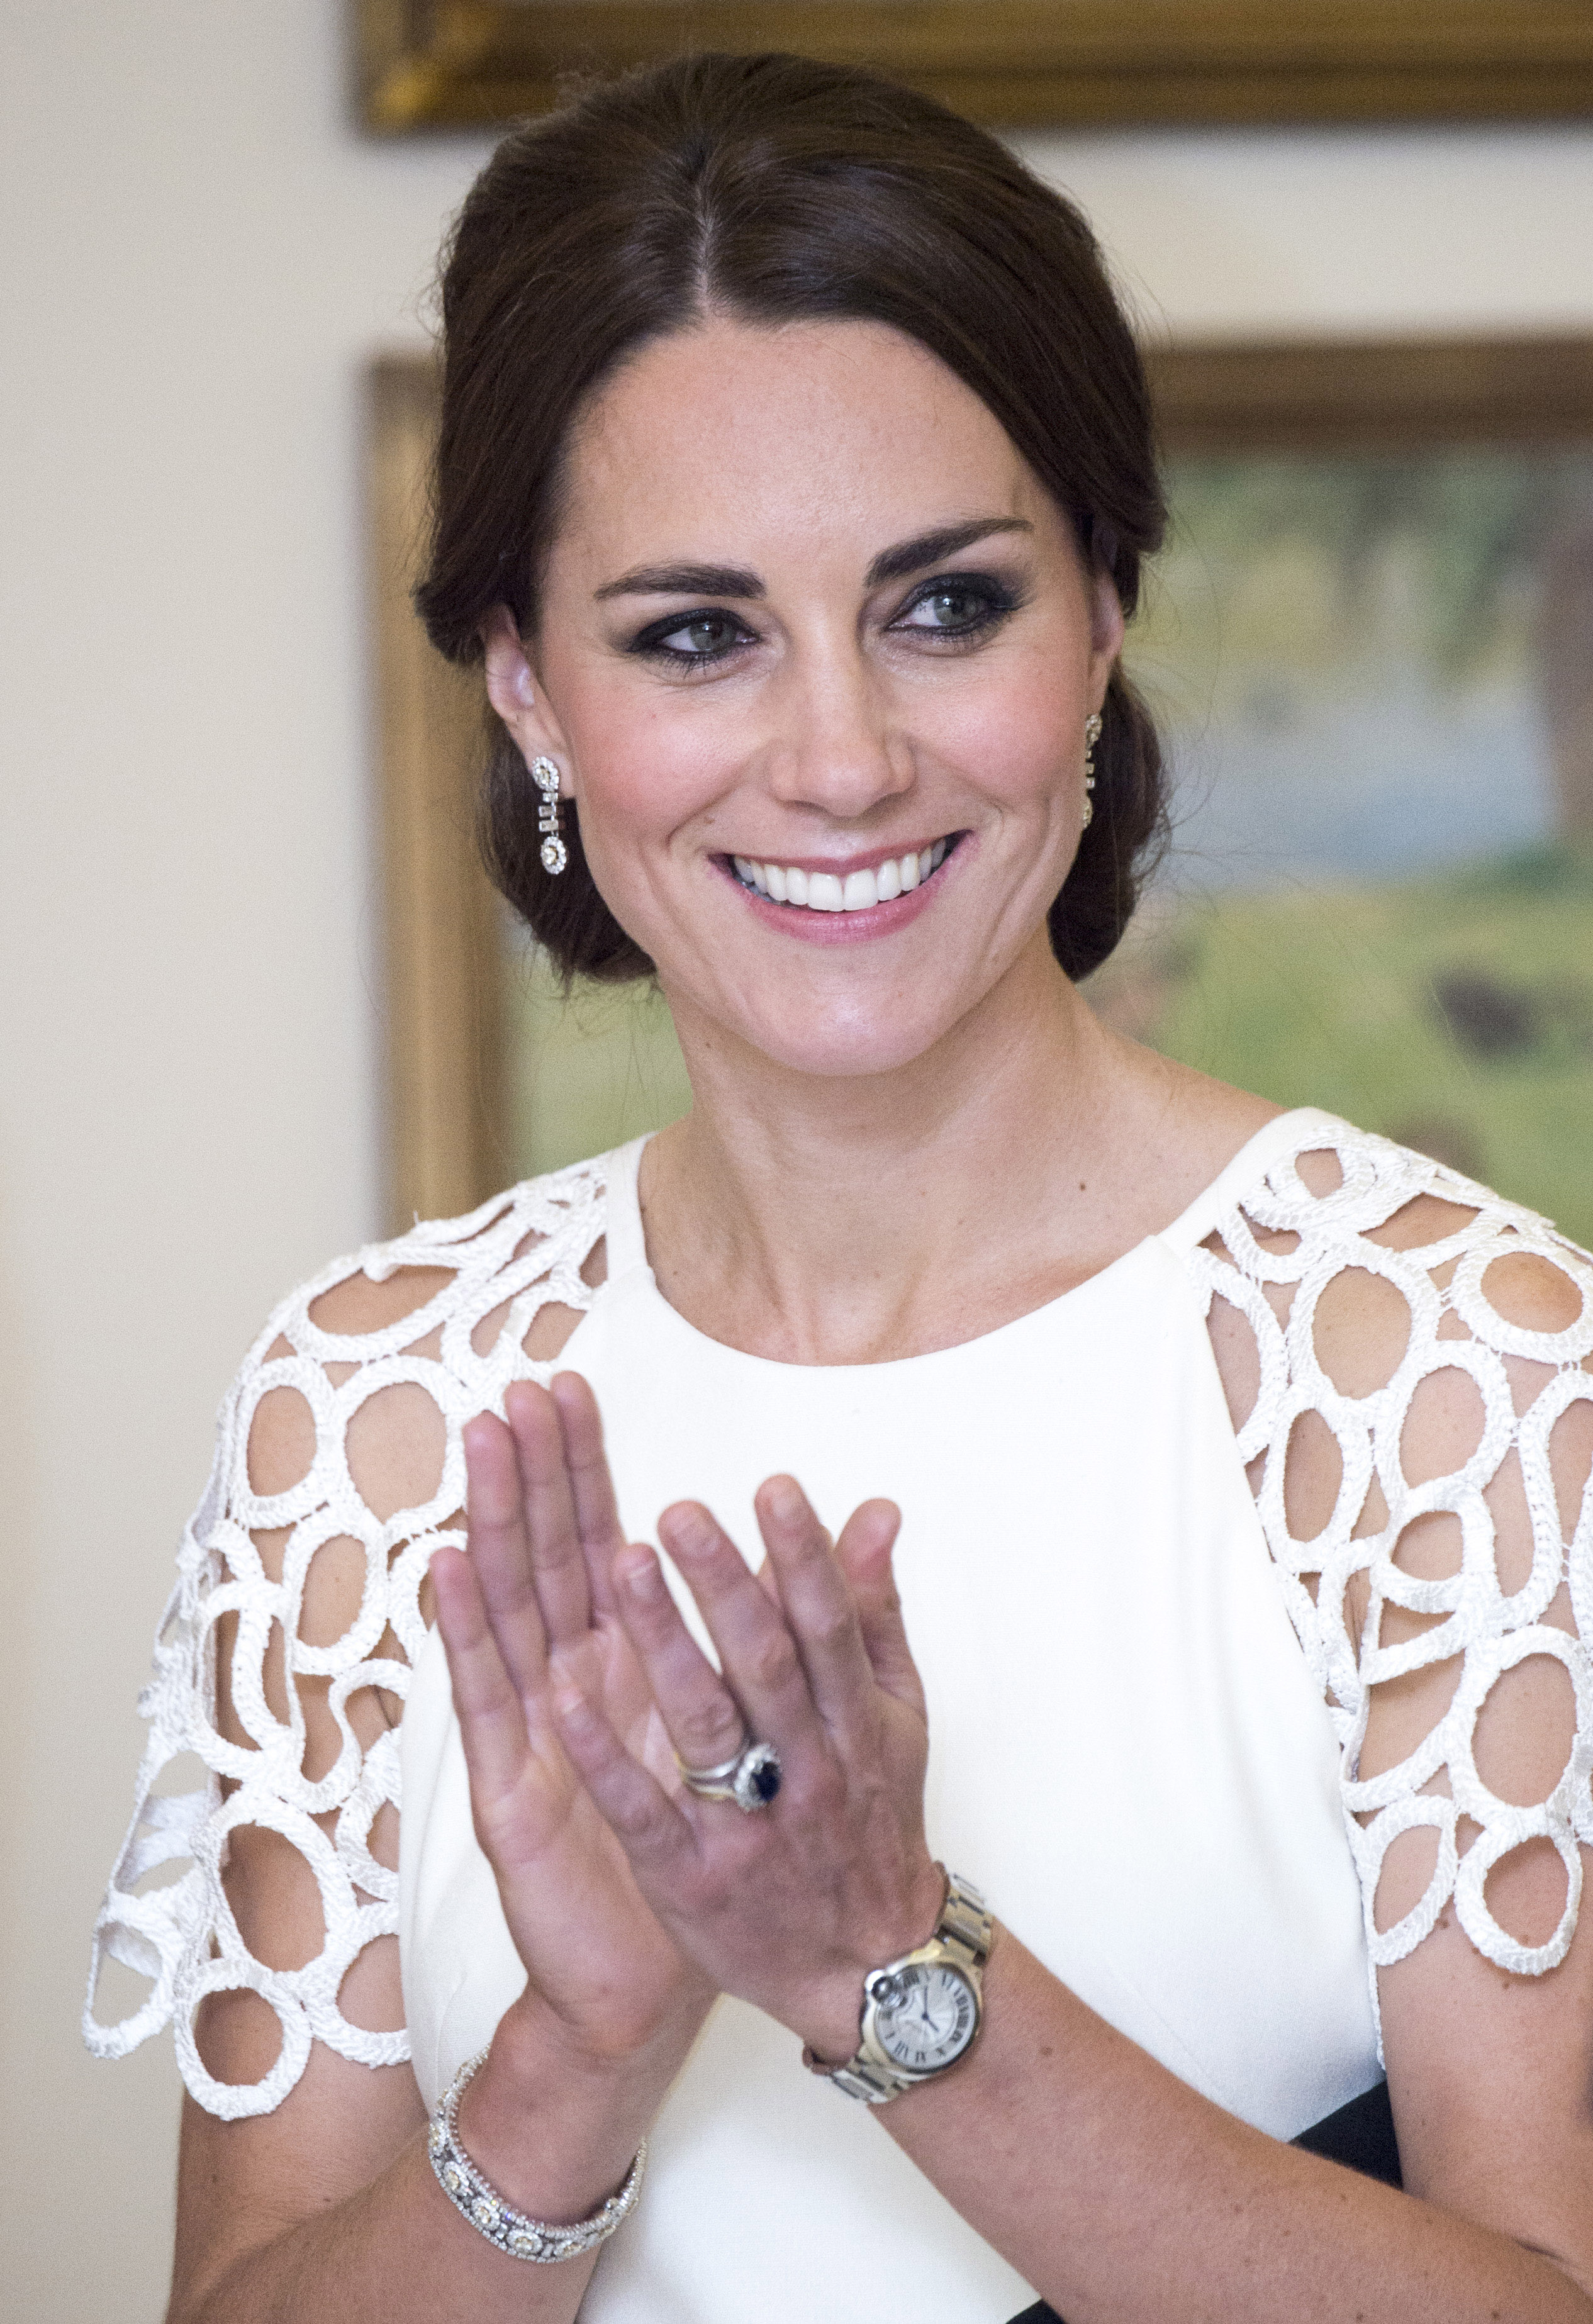 Kate Middleton Desktop 4K HQFX Photos LLGL Gallery 2532x3694